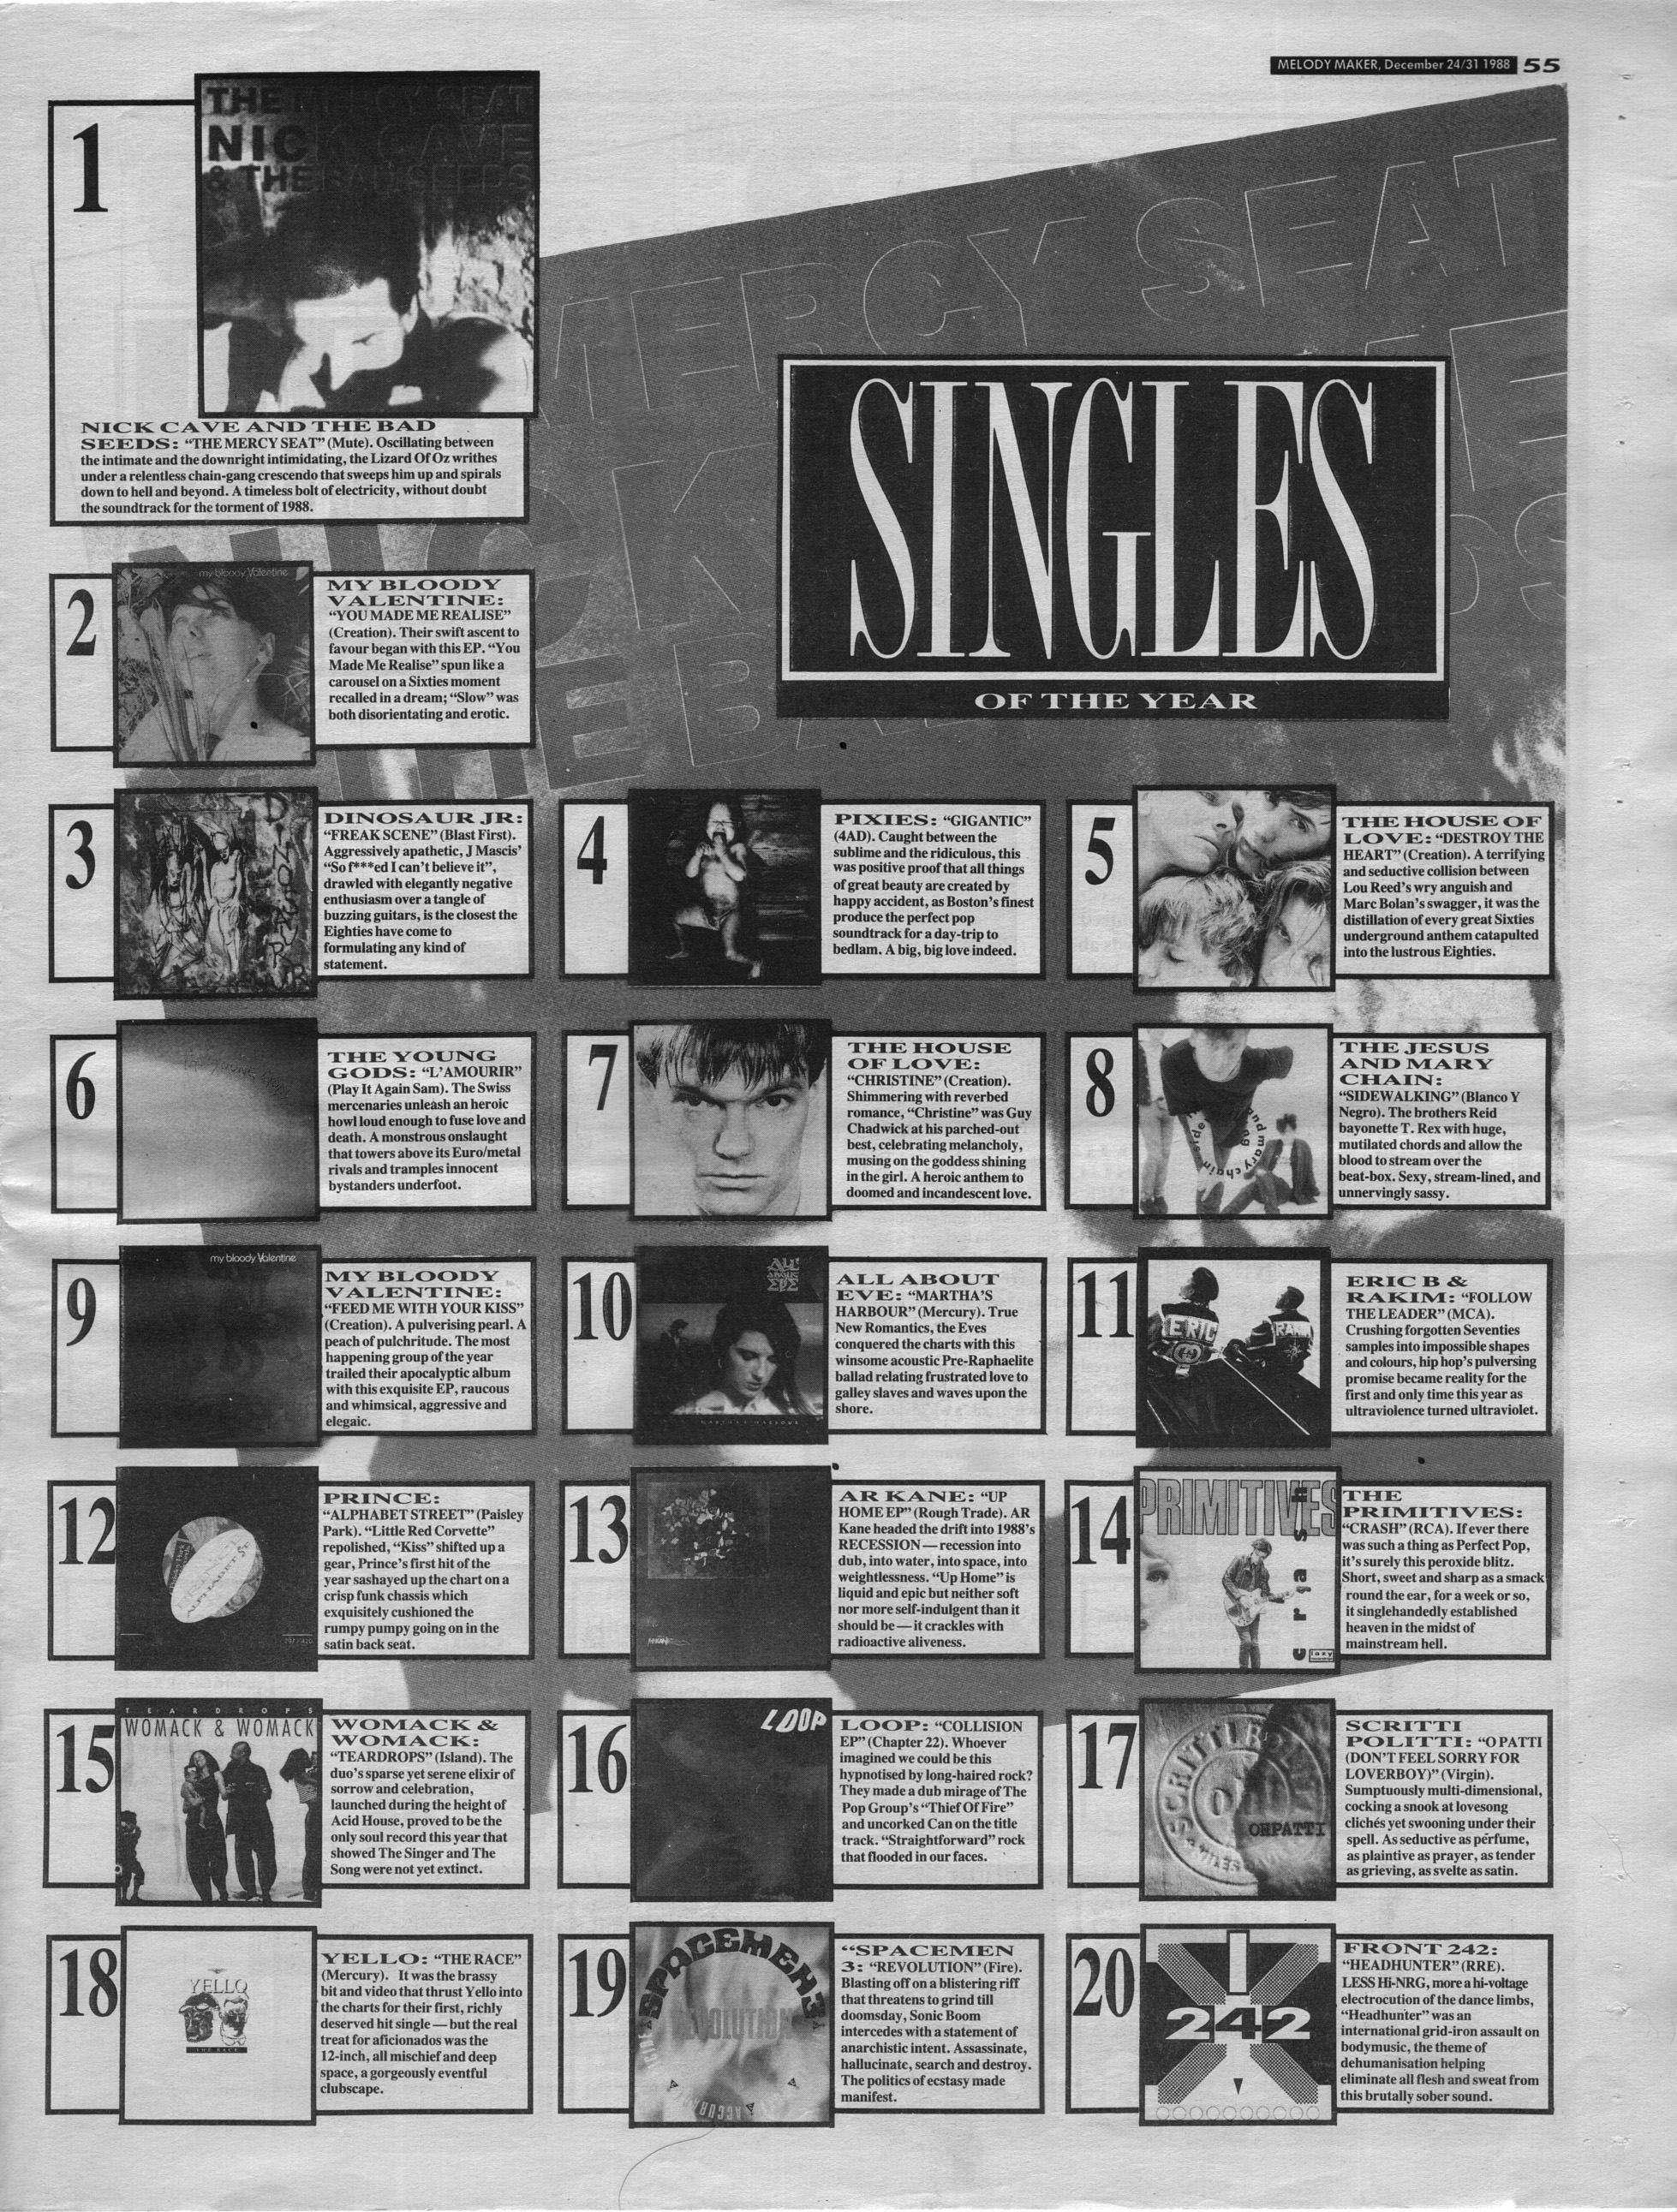 Melody Maker singles of the year 1988